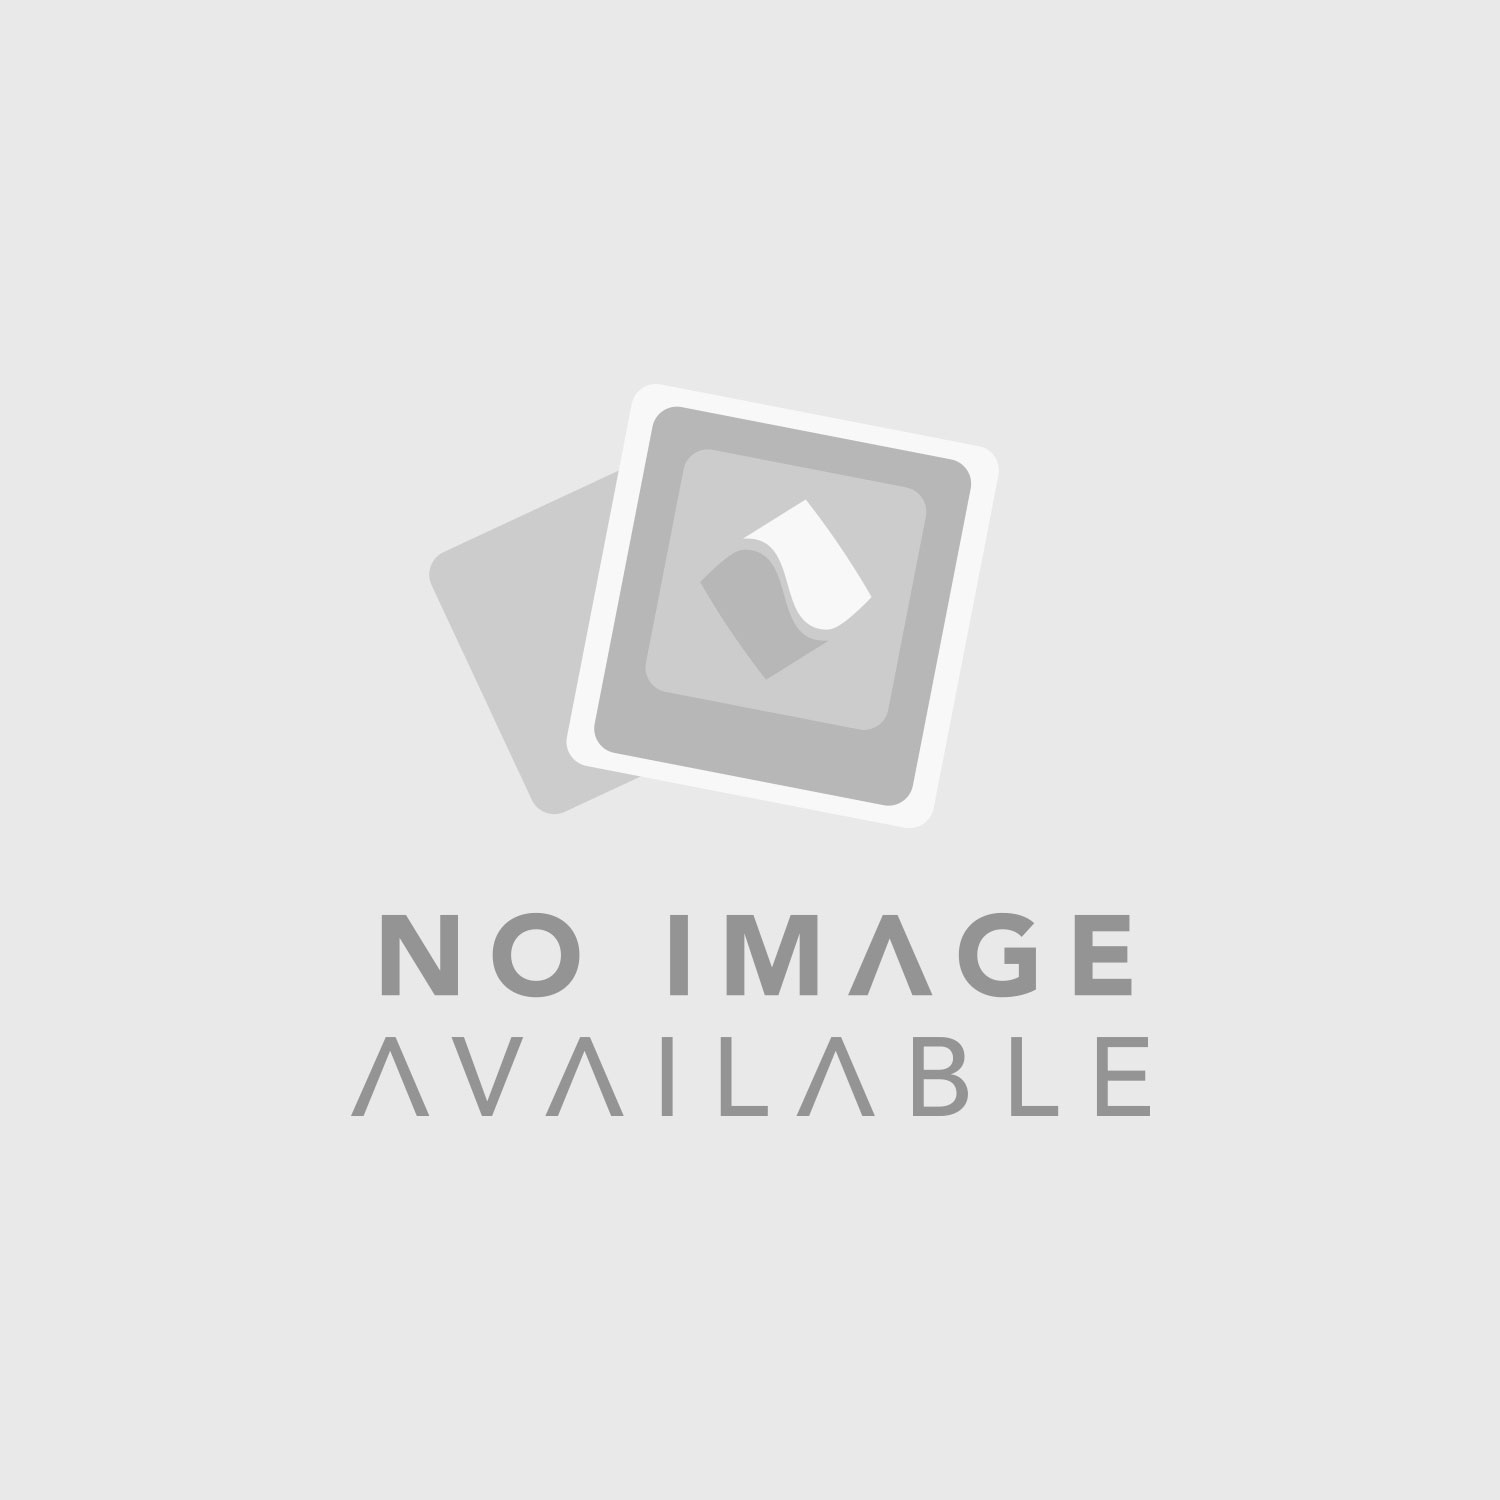 Avid Pro Tools 1-Year Subscription Renewal for Perpetual License (Download, Student/Teacher)